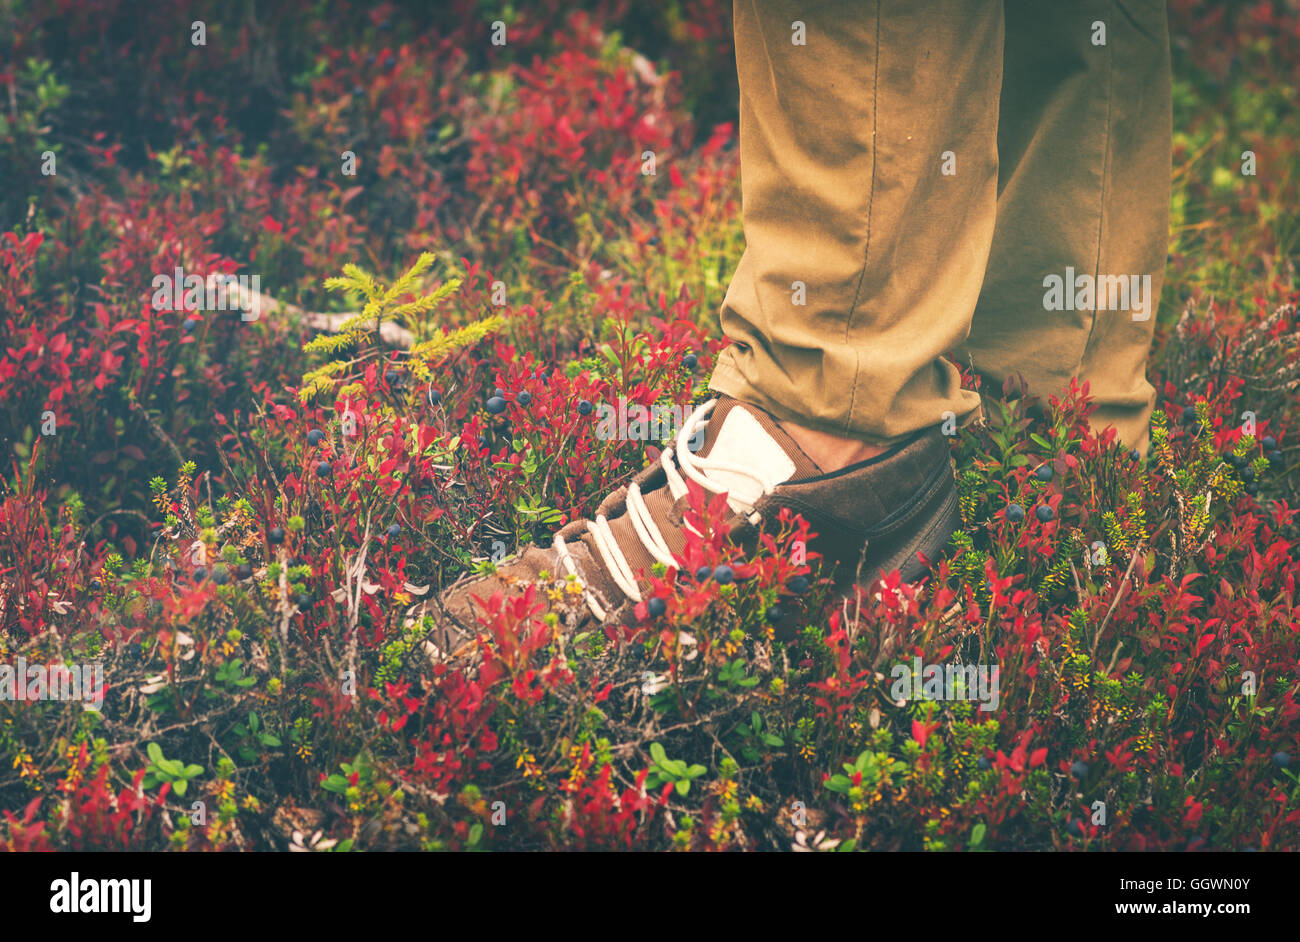 Feet Man Sneakers shoes walking Outdoor Travel Lifestyle Fashion trendy style forest nature on background - Stock Image